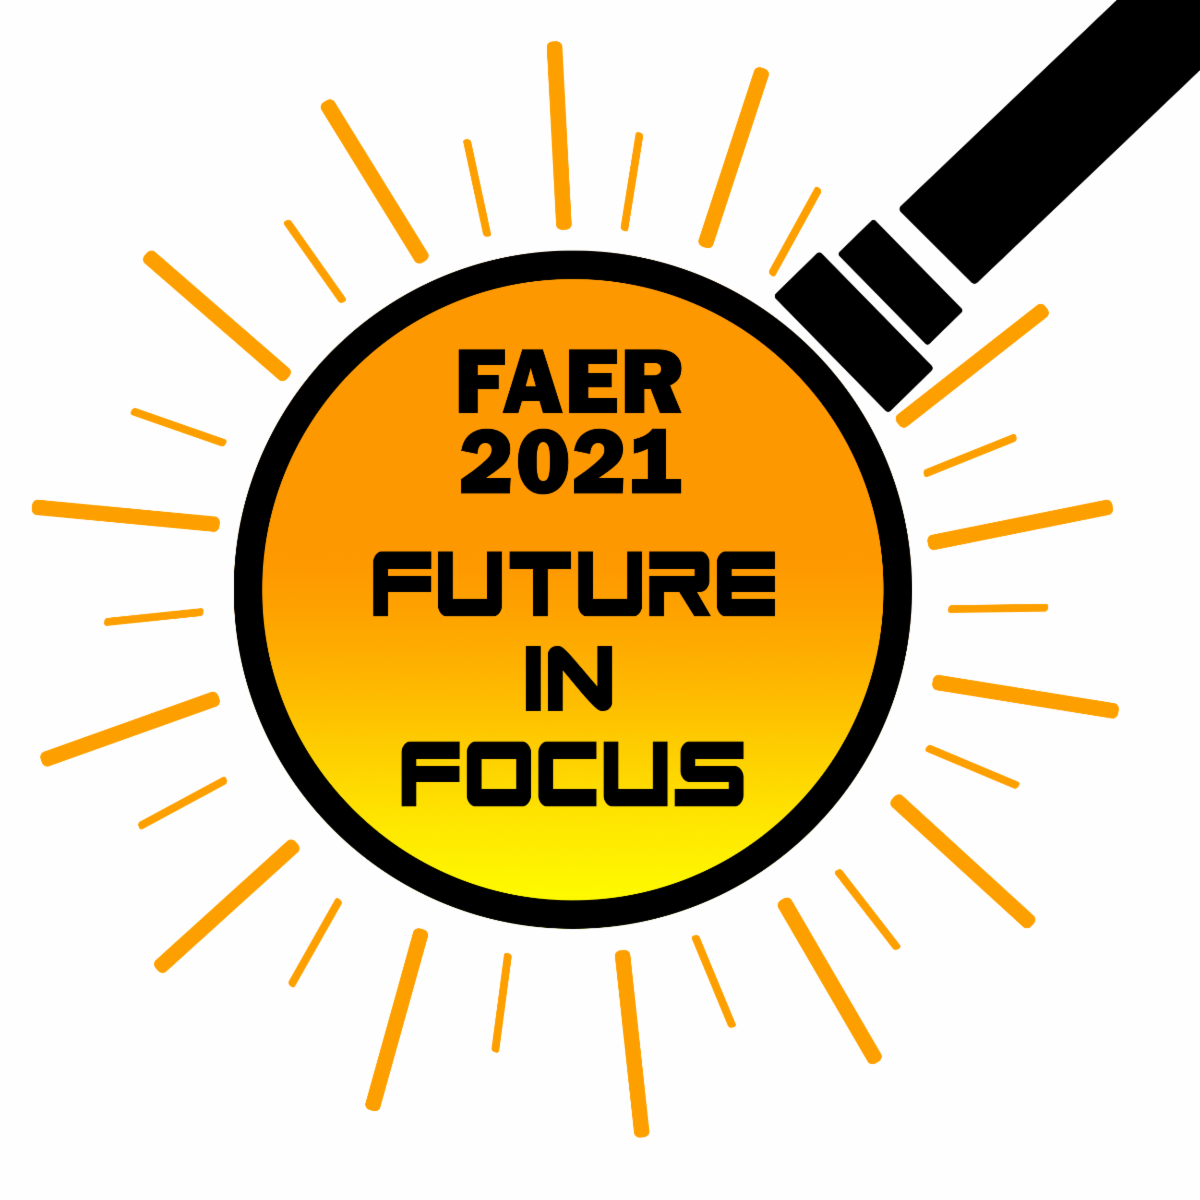 FAER 2021 Future in Focus logo a sunburst with a magnifier outline